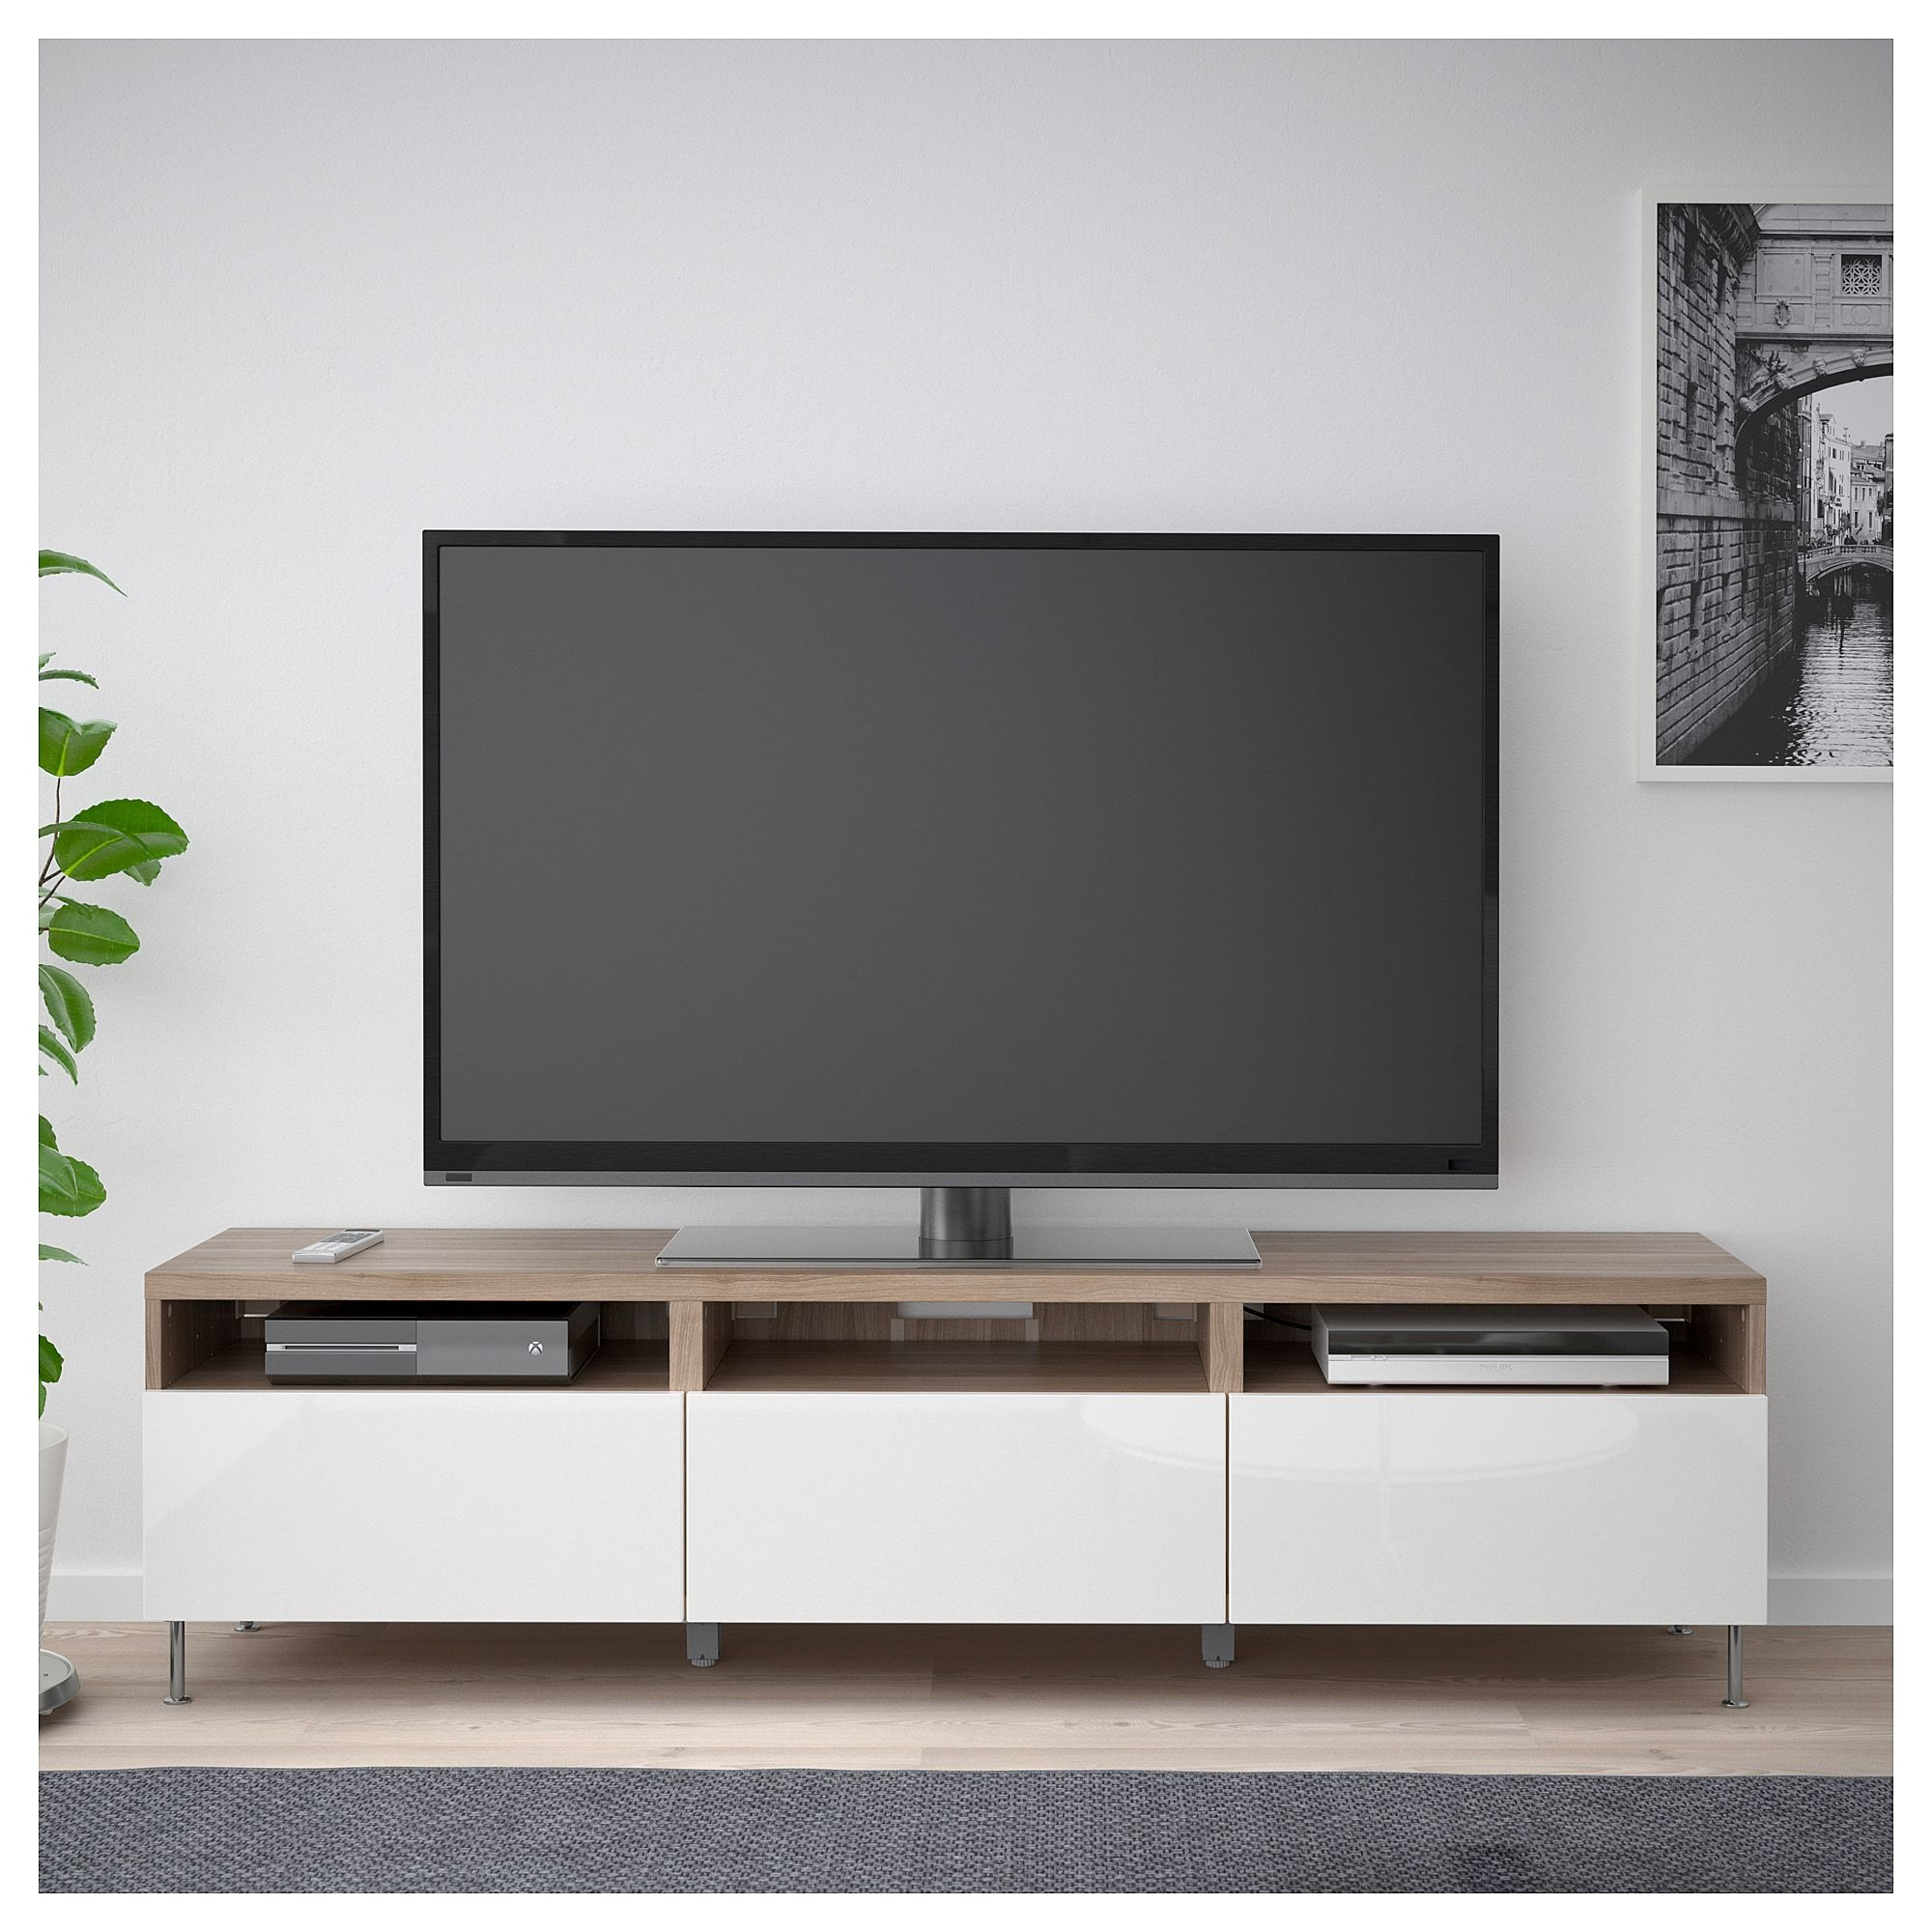 Ikea Meuble Tv Led BestÅ Tv Unit With Drawers Lappviken White In 2019 Home Ideas